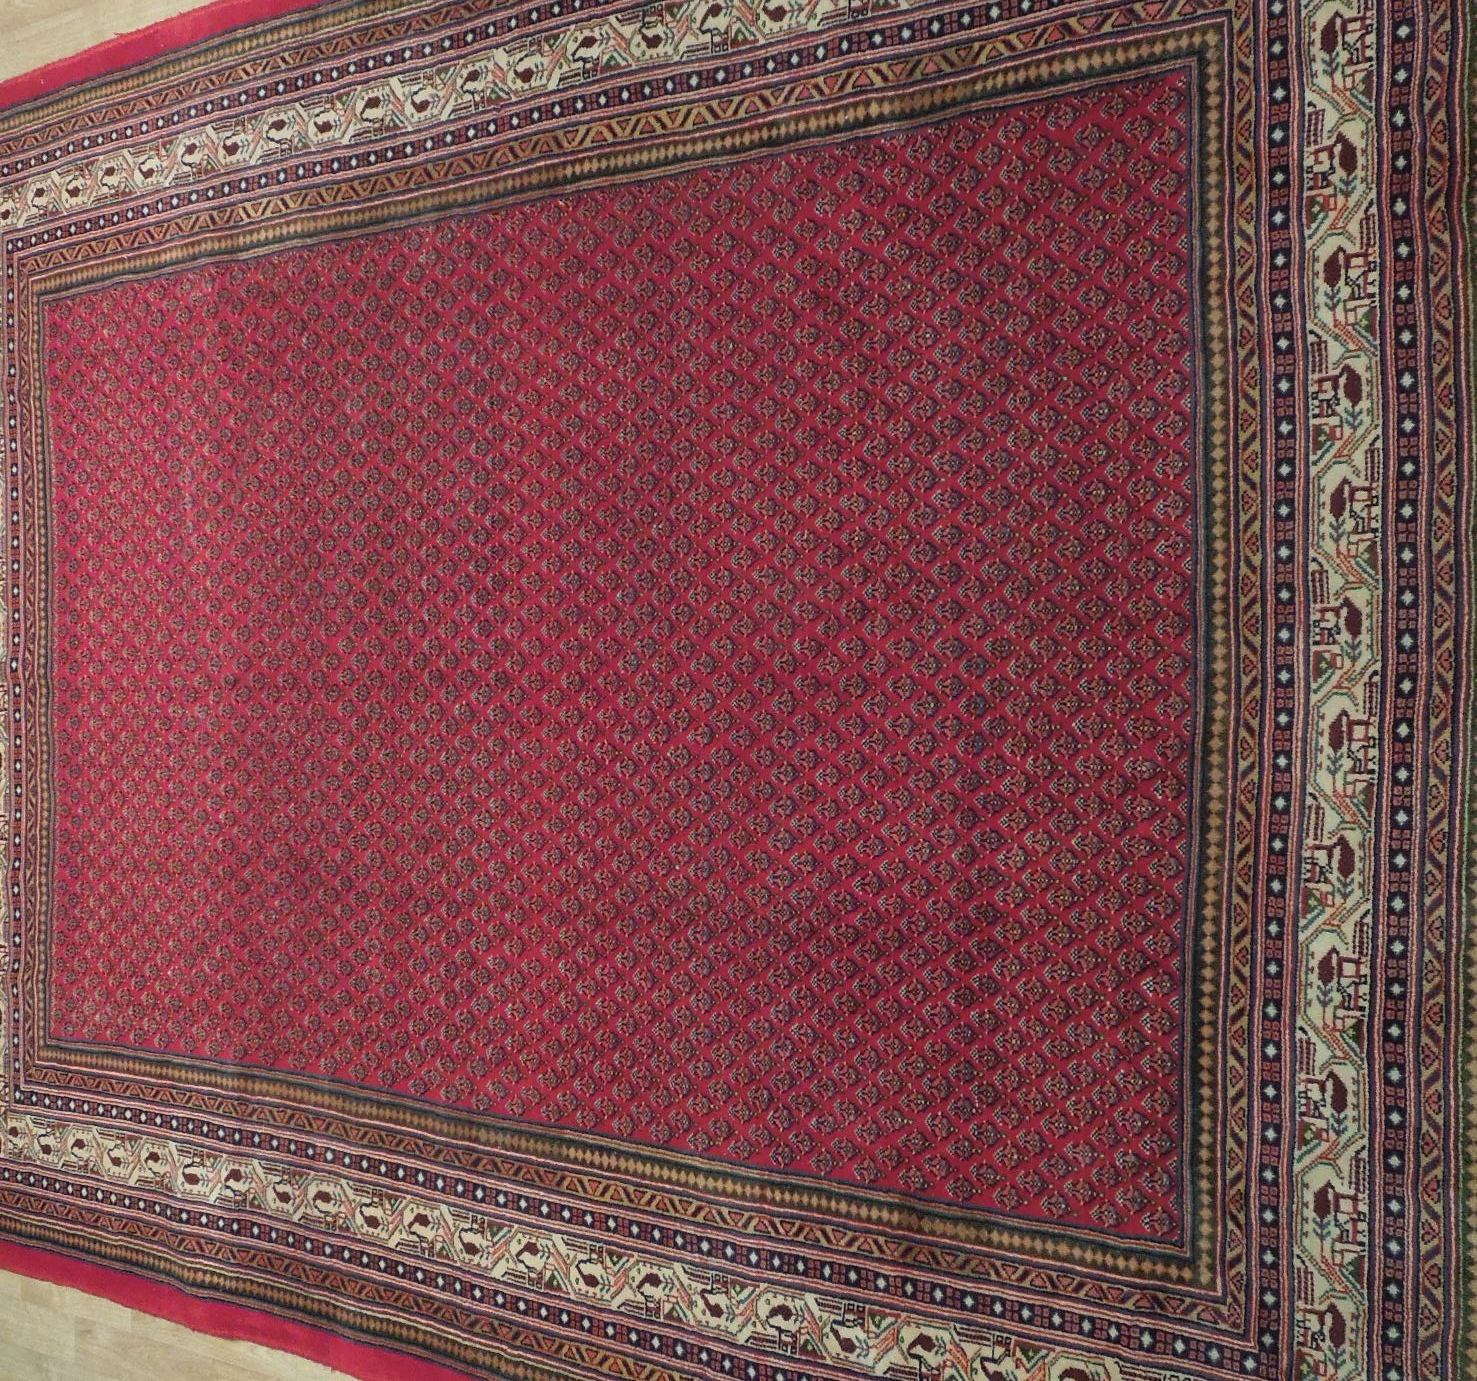 Vivid Boteh Flamed All-Over Persian Hand-Knotted 7x10 Red Mir Wool Area Rug image 10